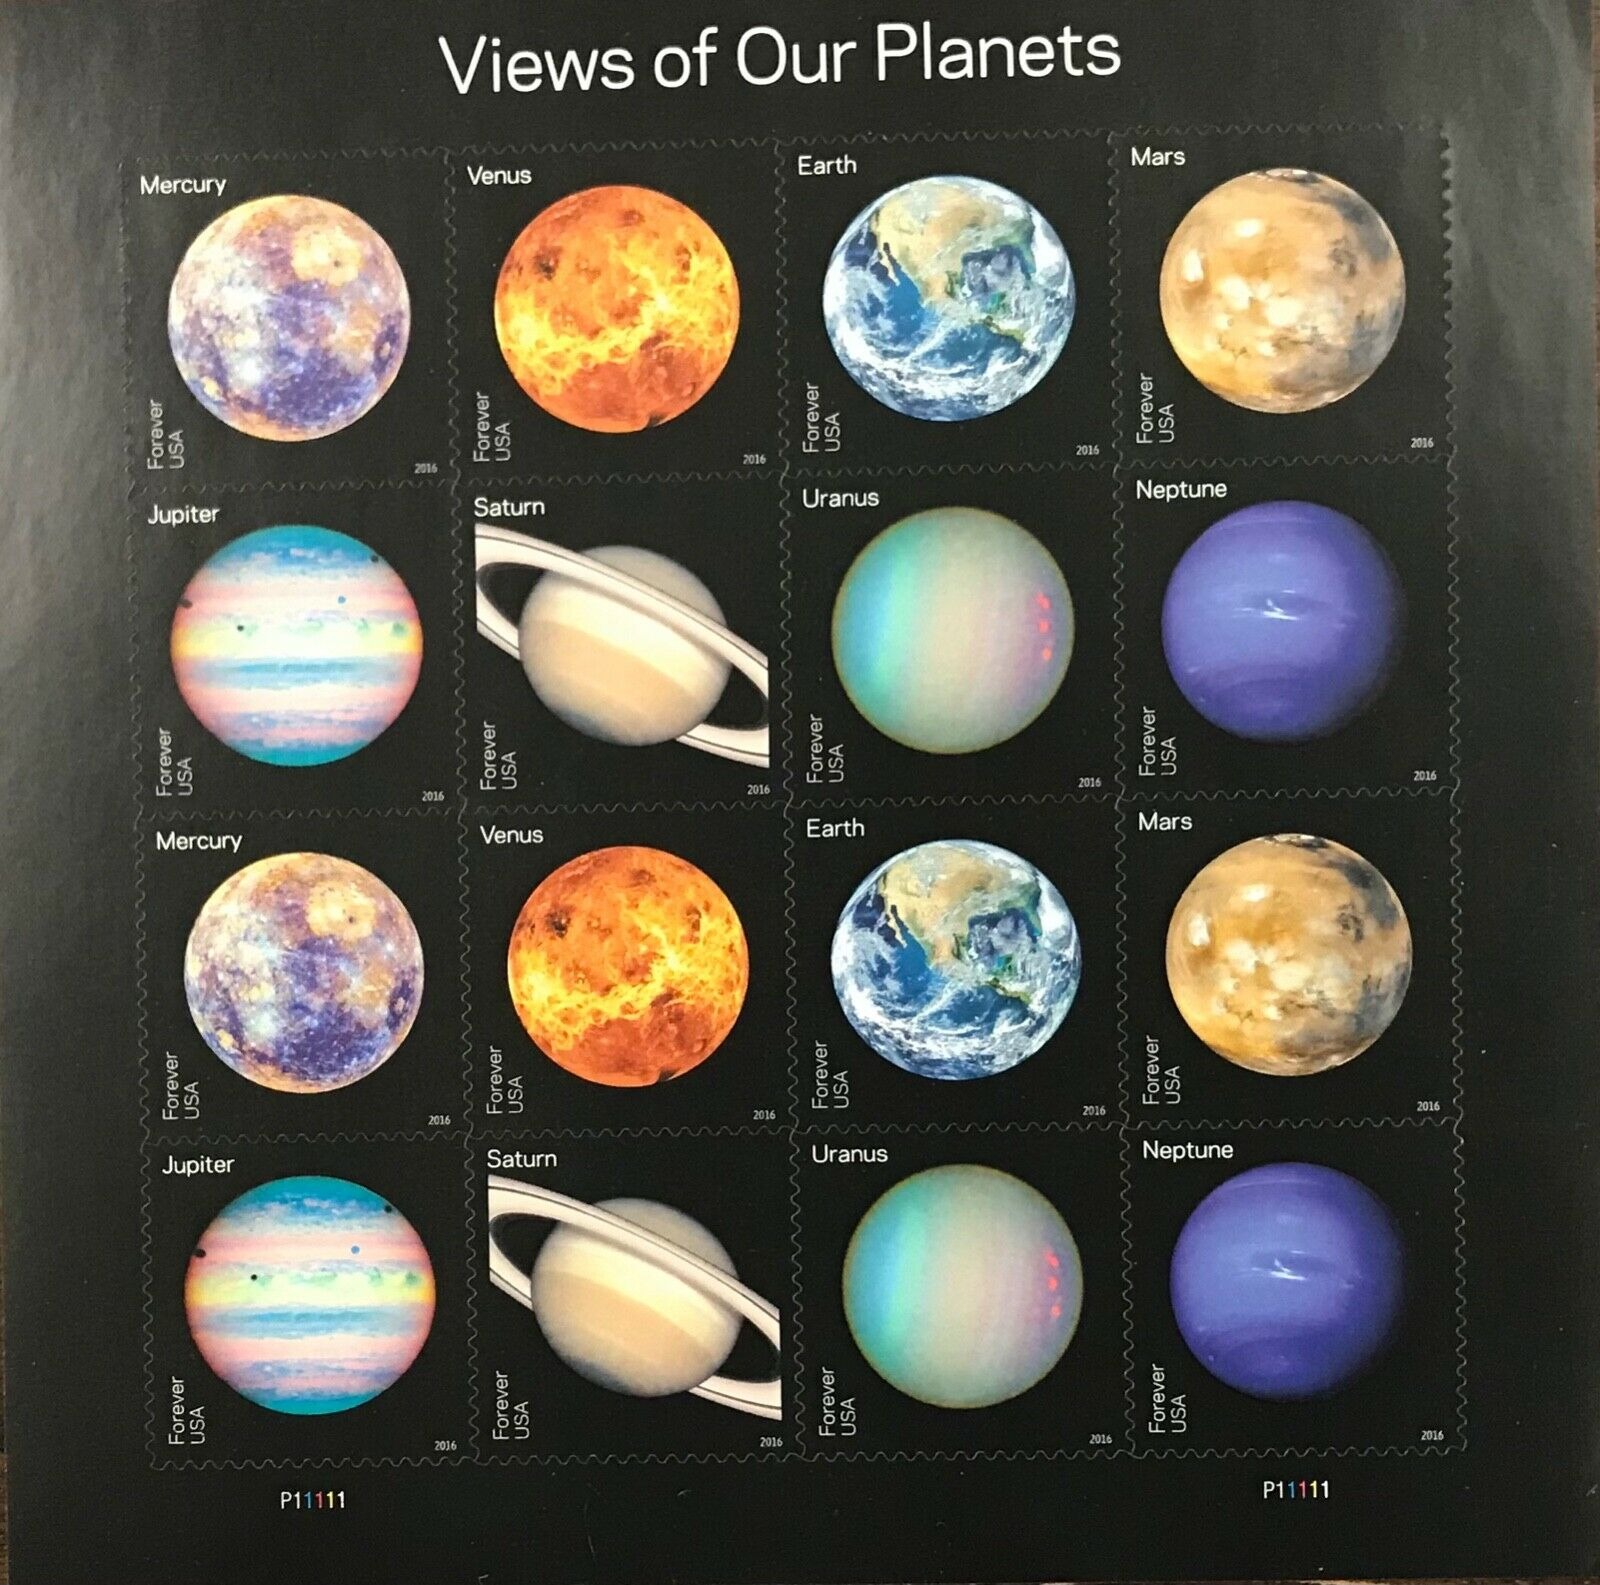 5069-5076    Views of our Planets   MNH Forever sheet of 16   FV $8.80   In 2016